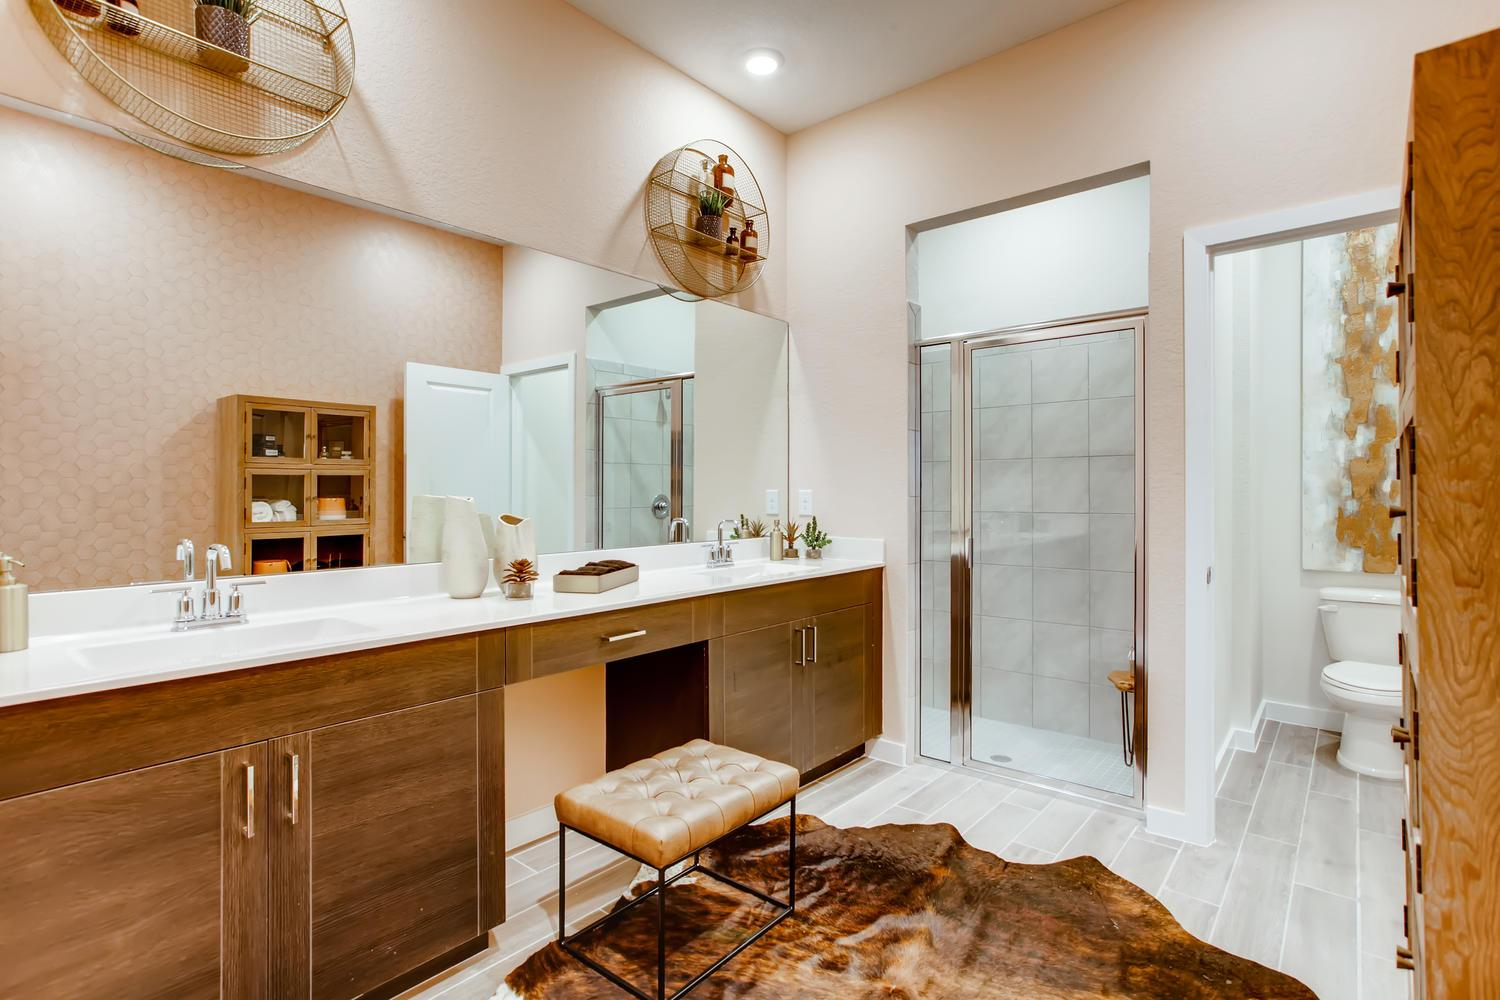 Bathroom featured in the Brisbane By D.R. Horton in Palm Beach County, FL